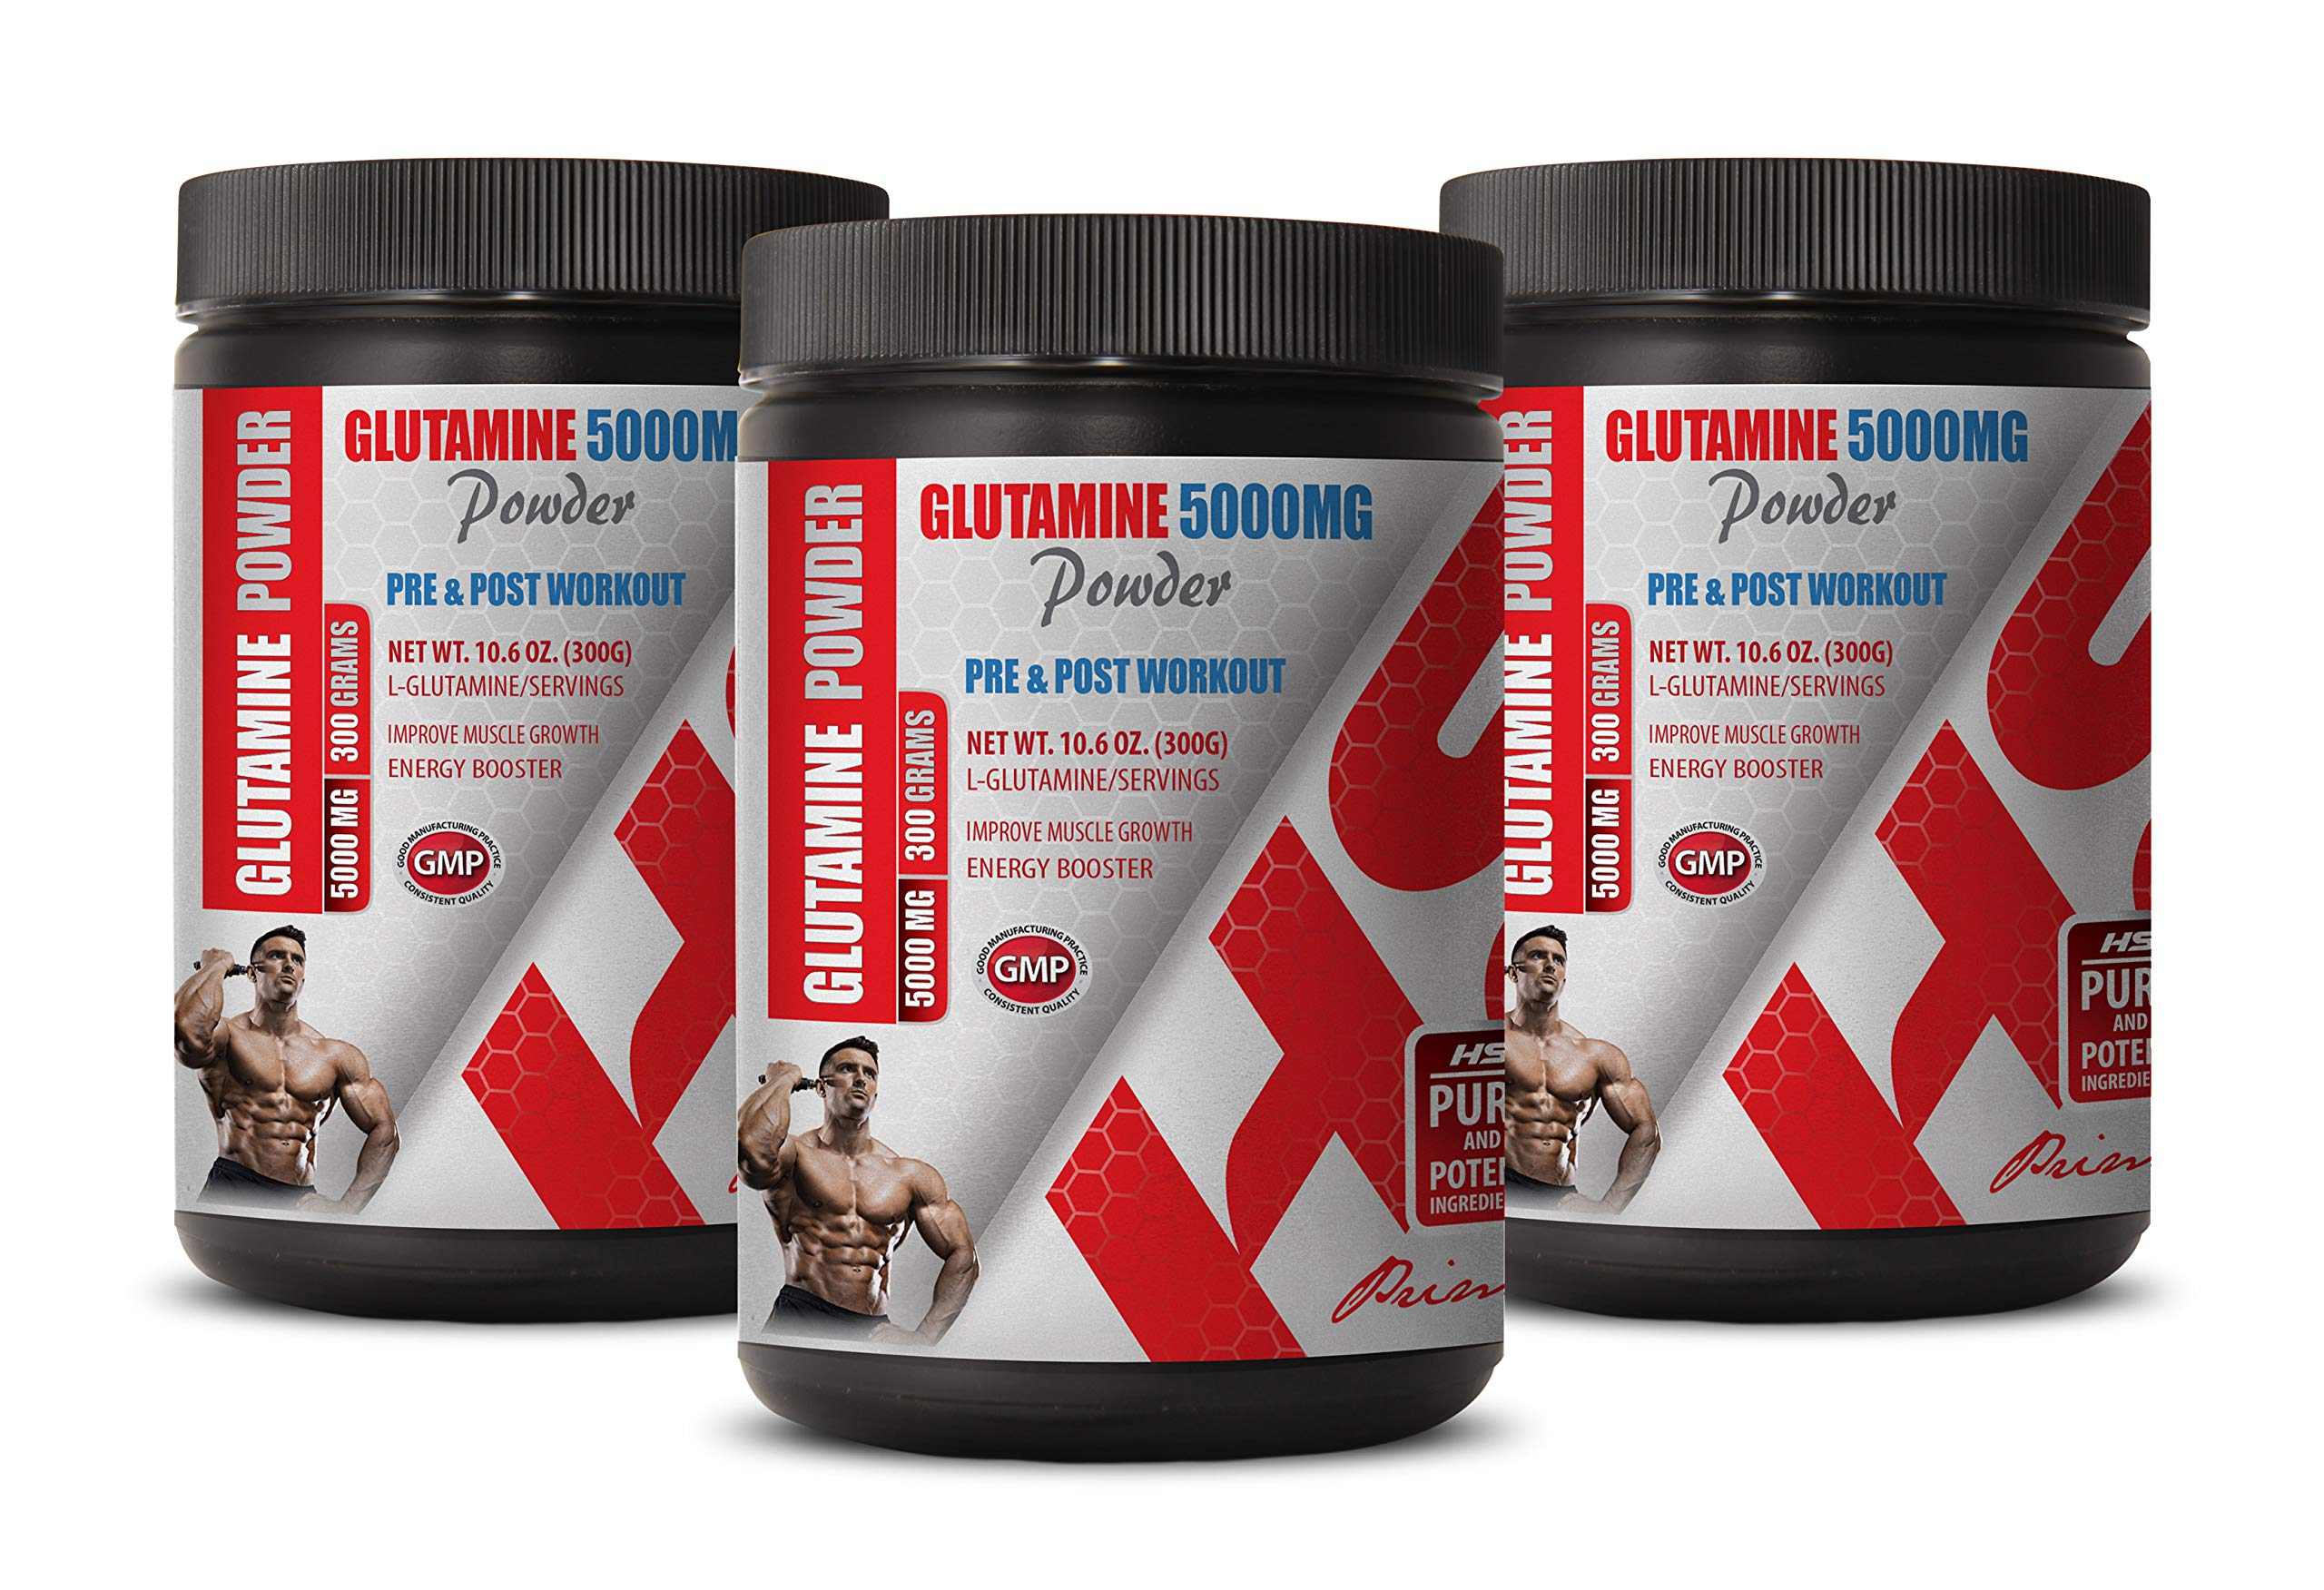 Muscle Recovery After Workout Supplements - PRE & Post Workout - GLUTAMINE Powder 5000MG - glutamine Powder Bulk Supplements - 3 Cans 900 Grams